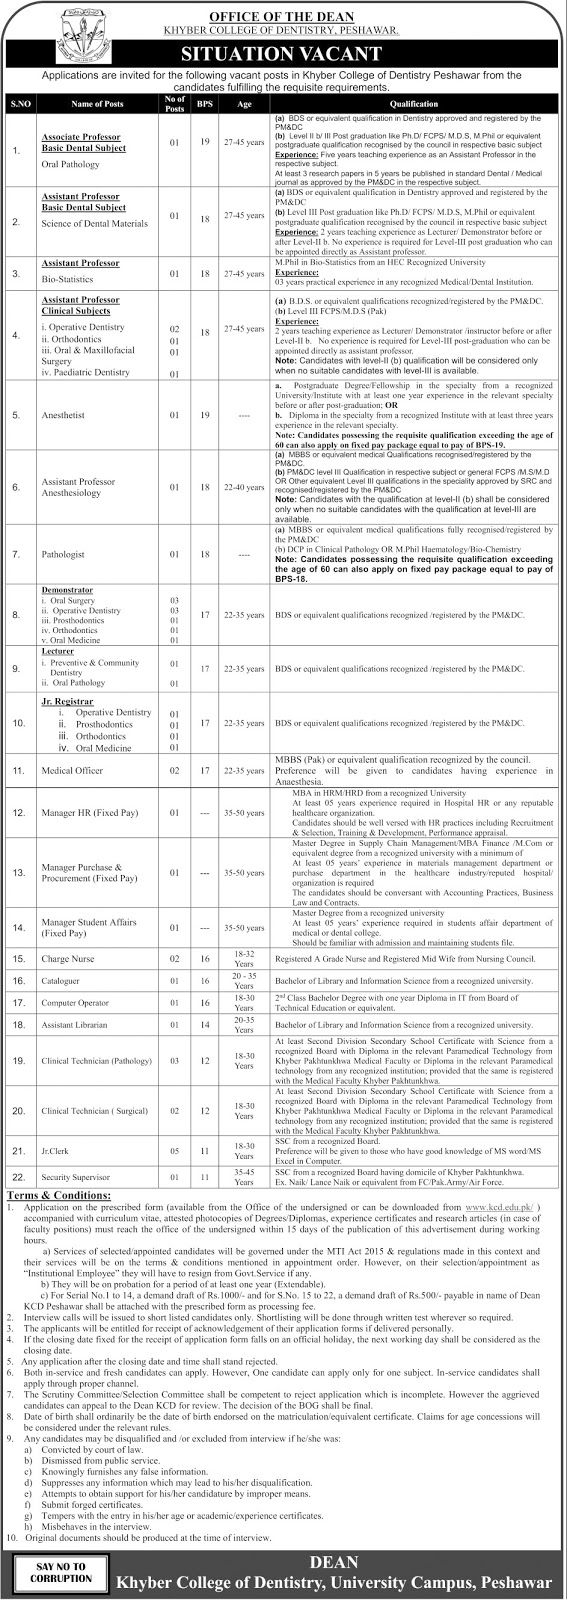 kcd peshawar jobs 6 May 2017